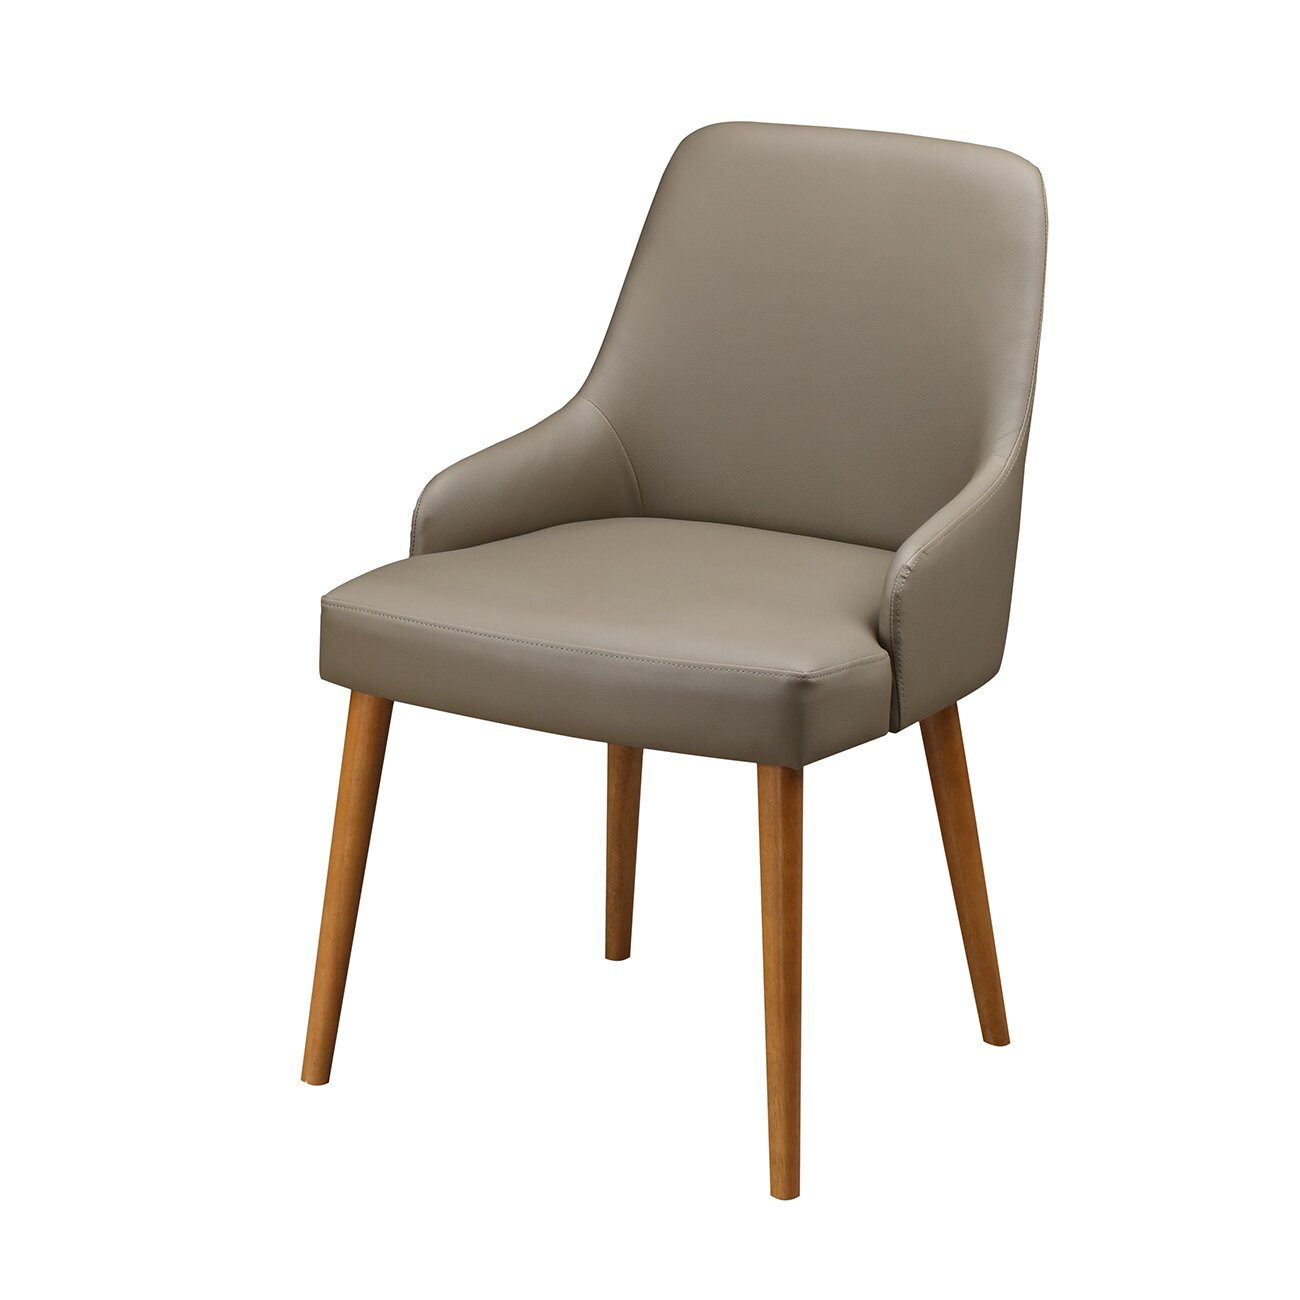 Modern Dining Chairs: George Oliver Buckingham Modern Upholstered Dining Chair